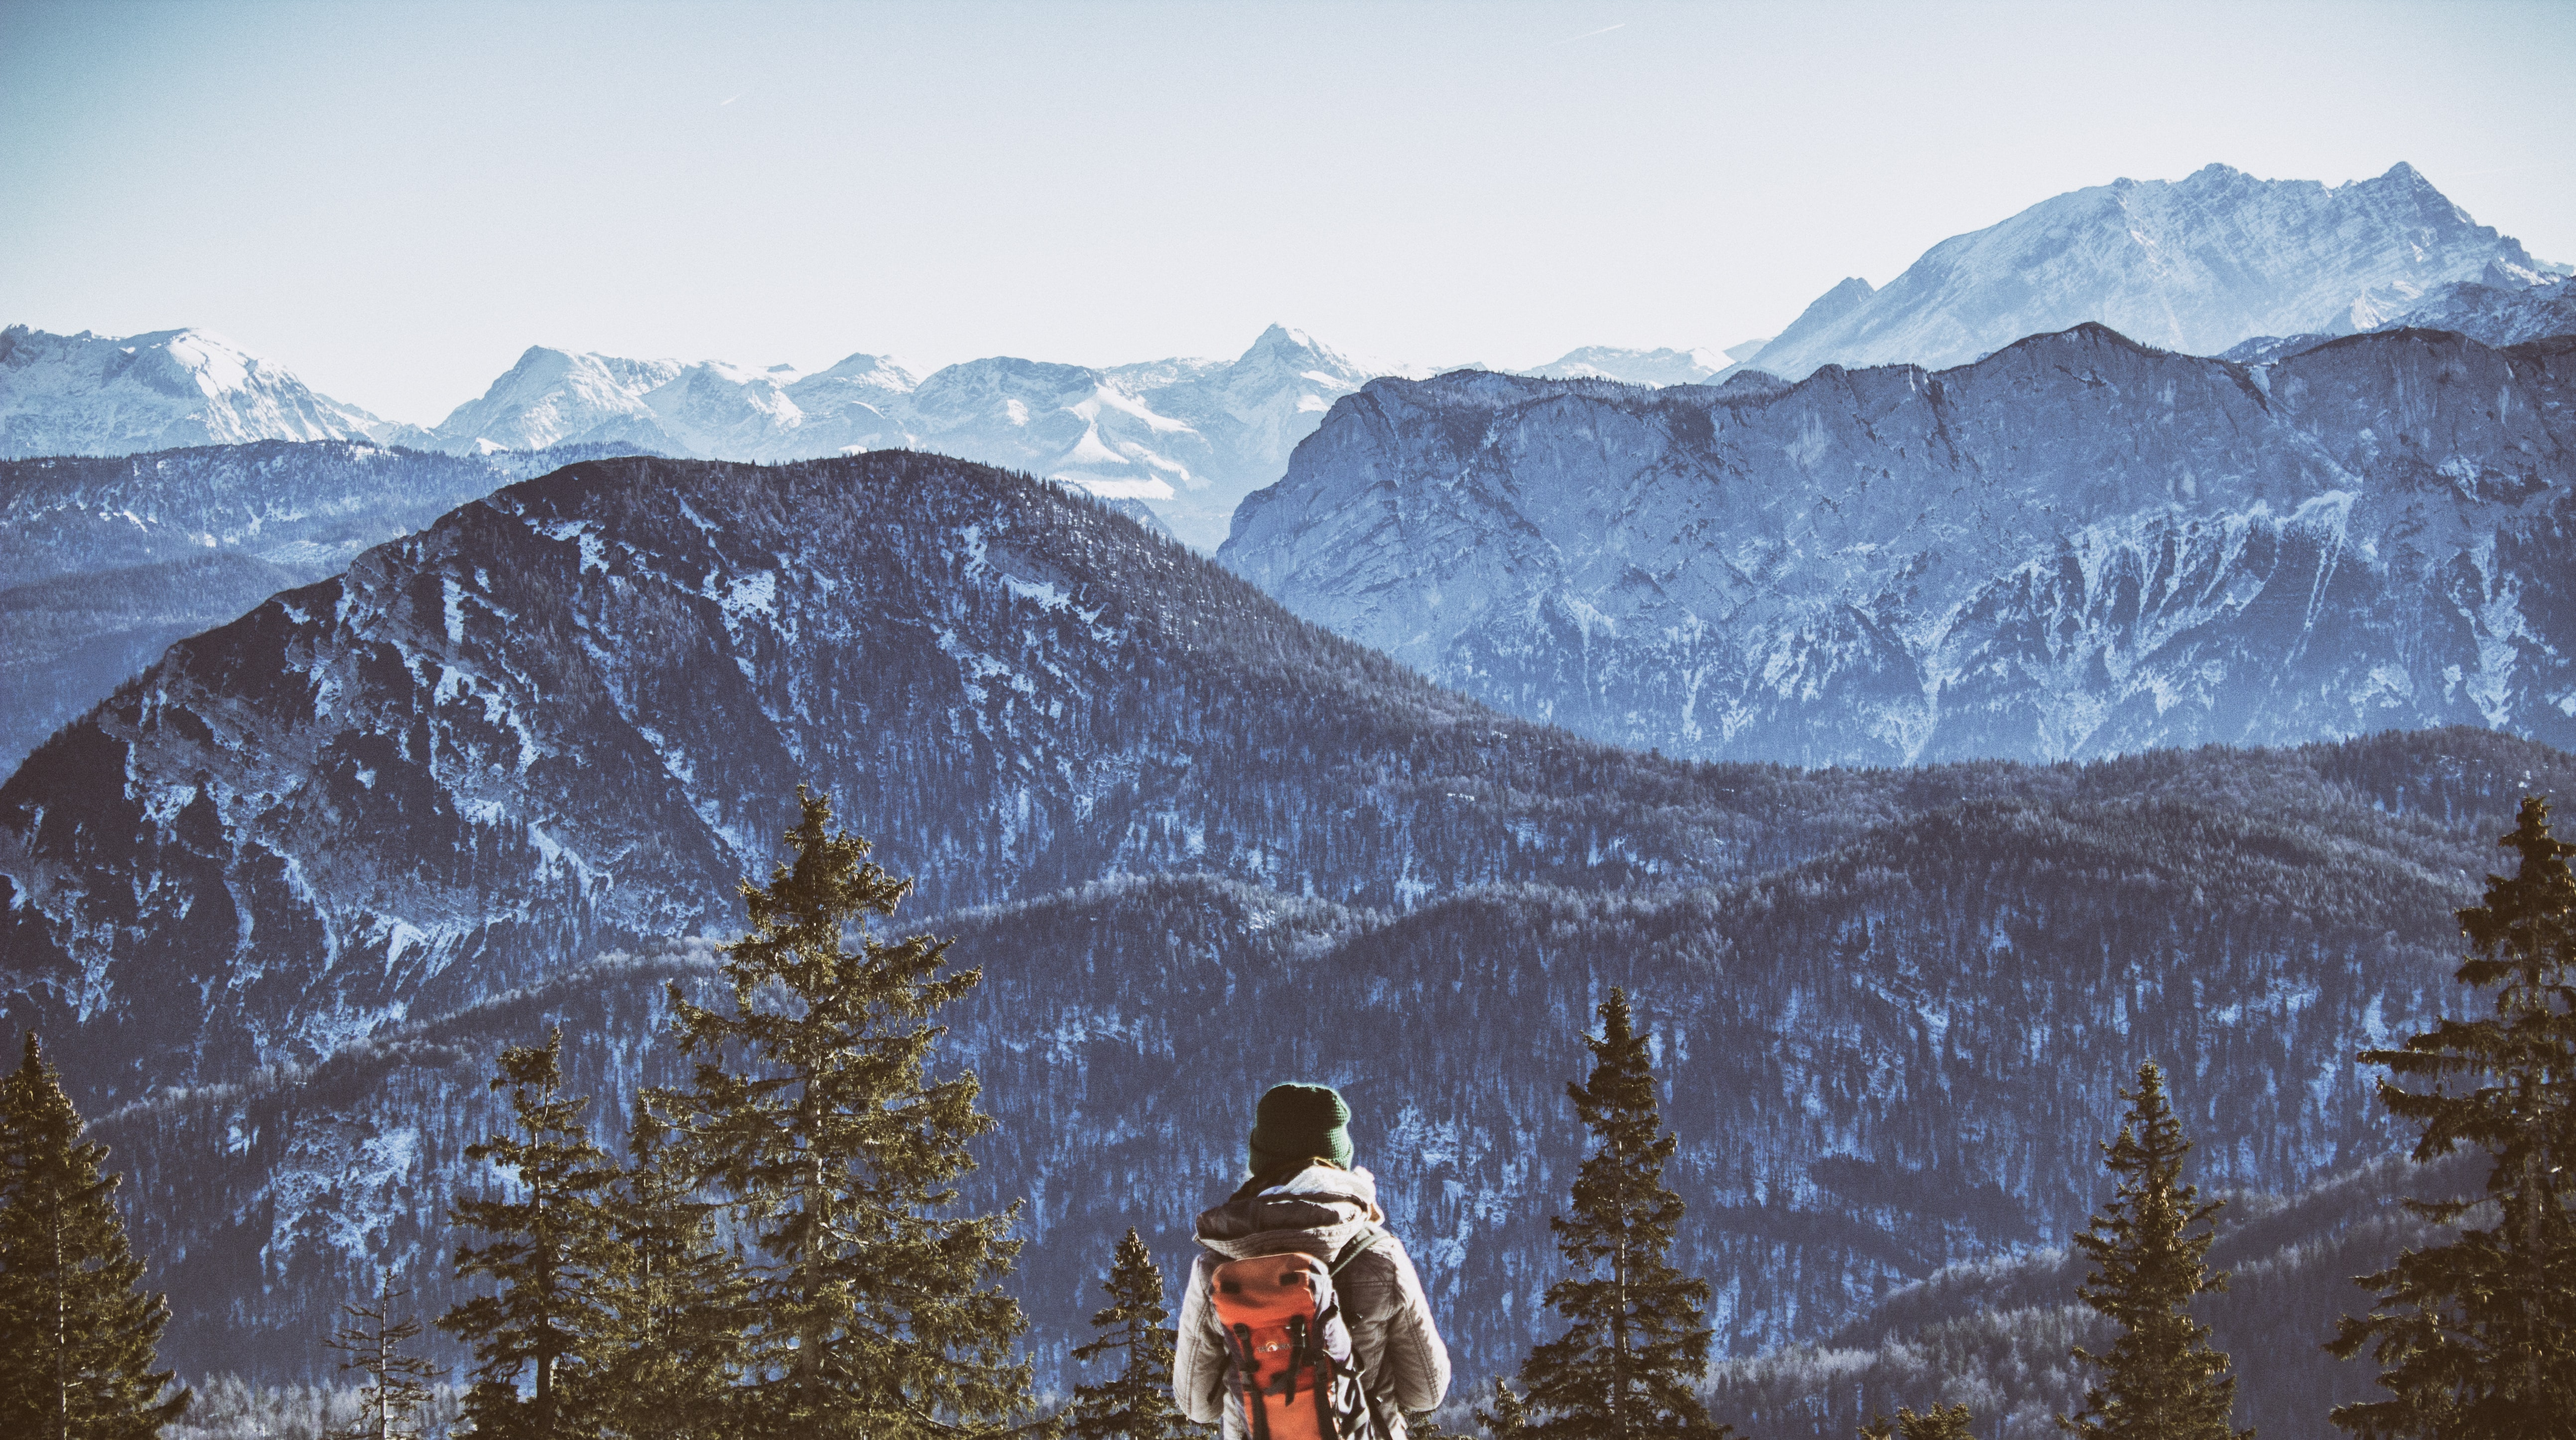 A man with a backpack on stares into the Chiemgau Alps